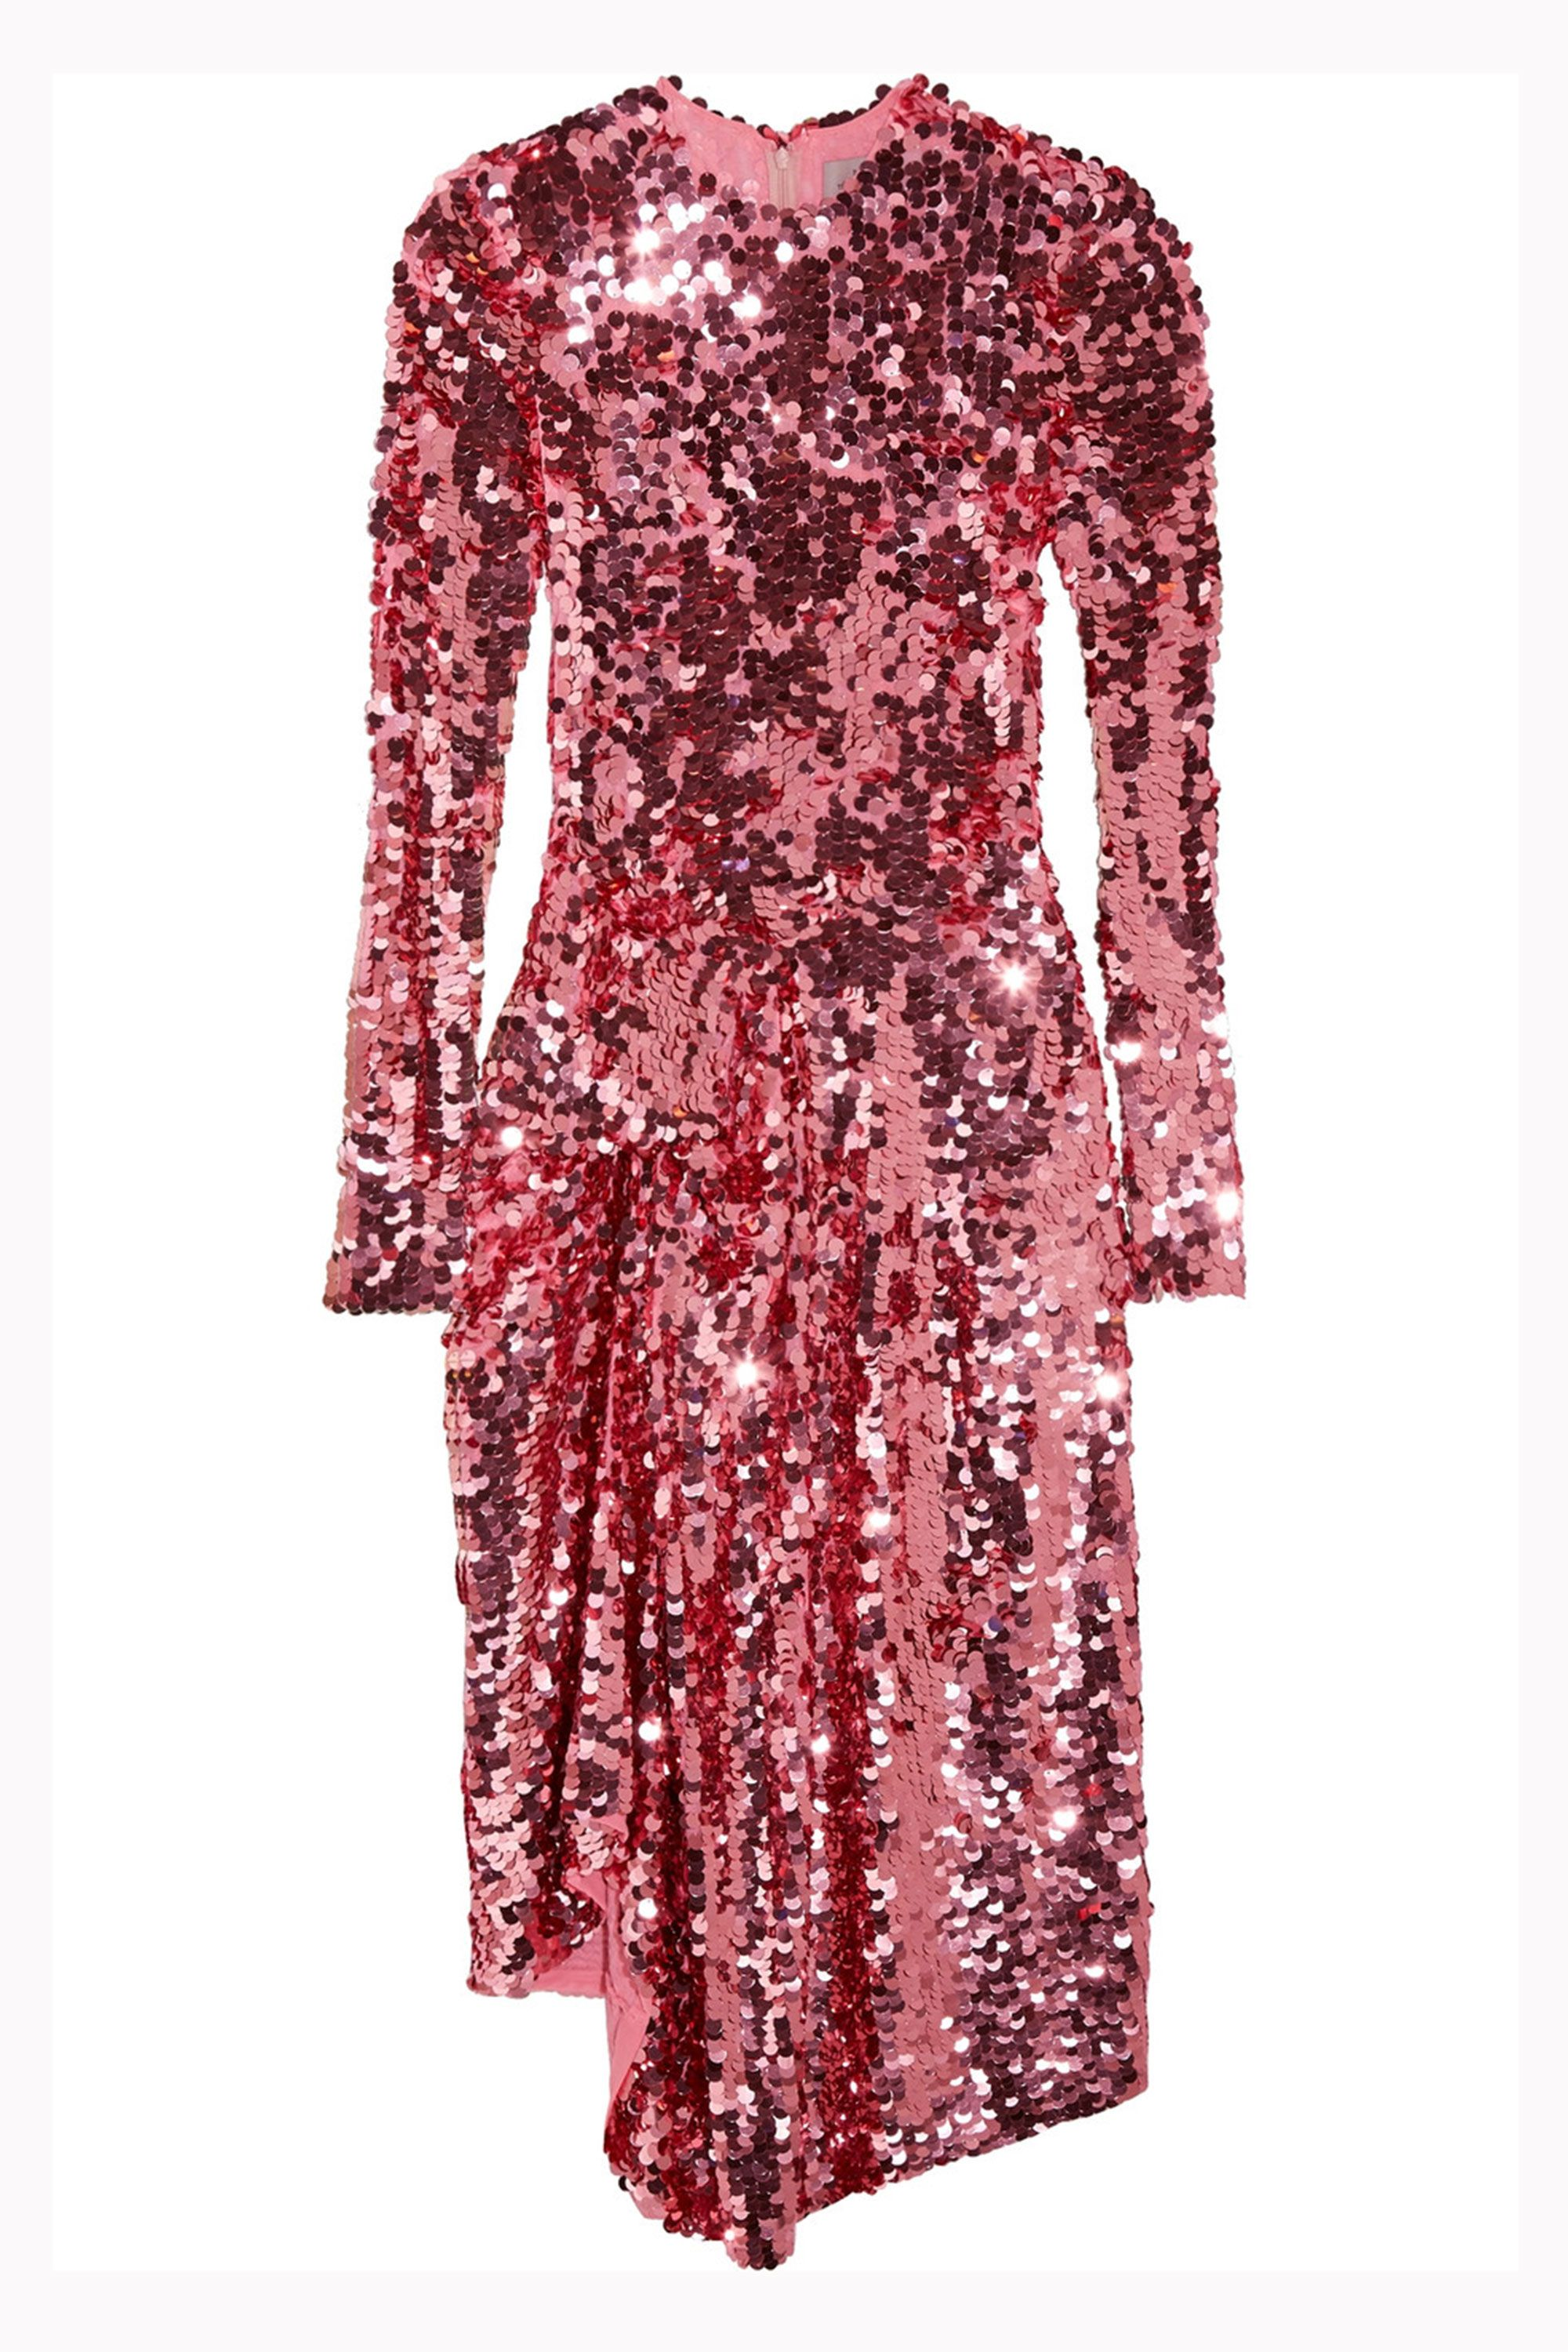 10 sequin dresses that have instant wow factor